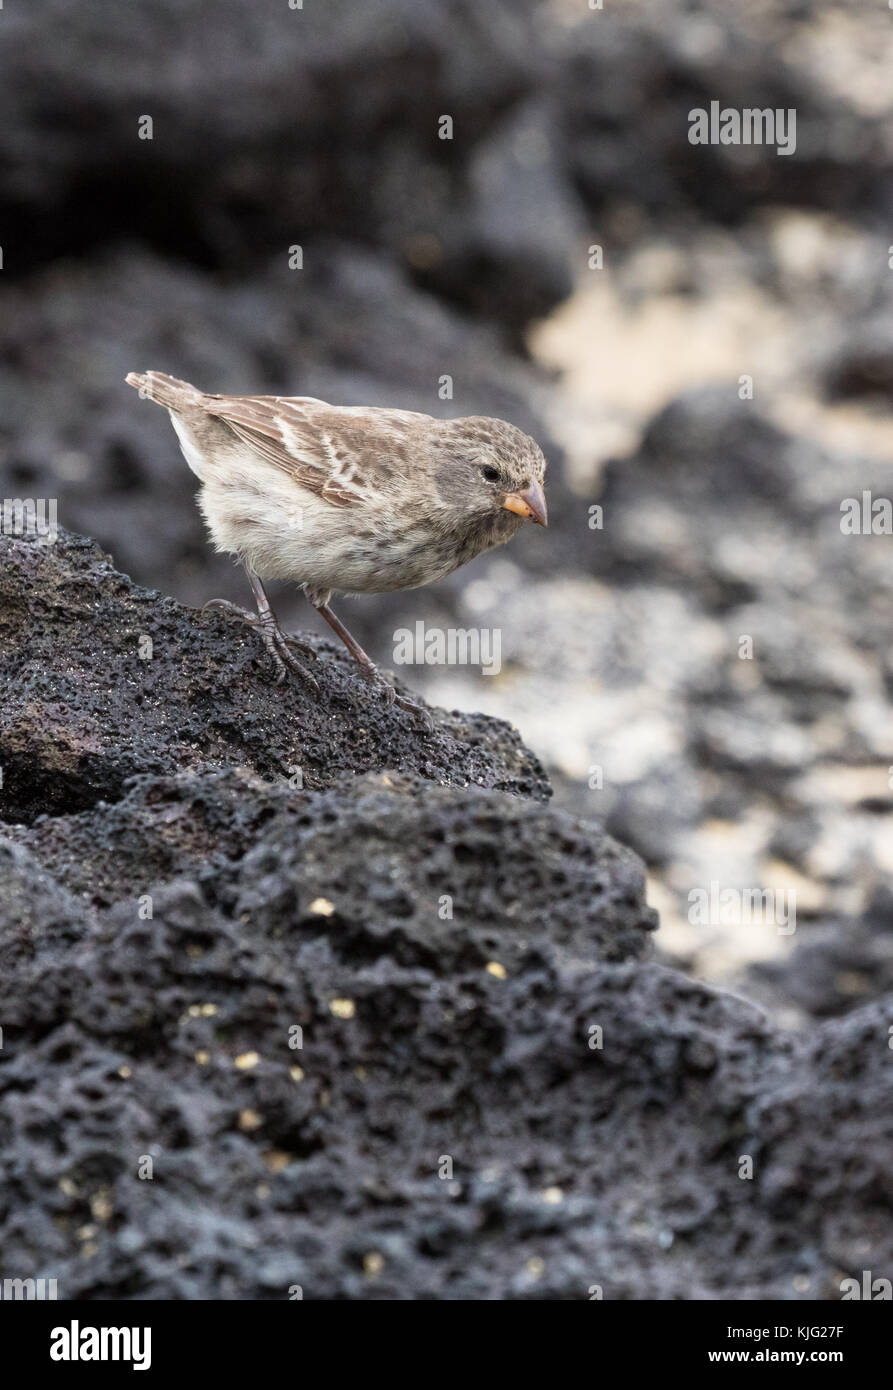 Darwin Finch - a Small Ground Finch, ( Geospiza fuliginosa ), on lava rock, Espanola Island, Galapagos Islands - Stock Image